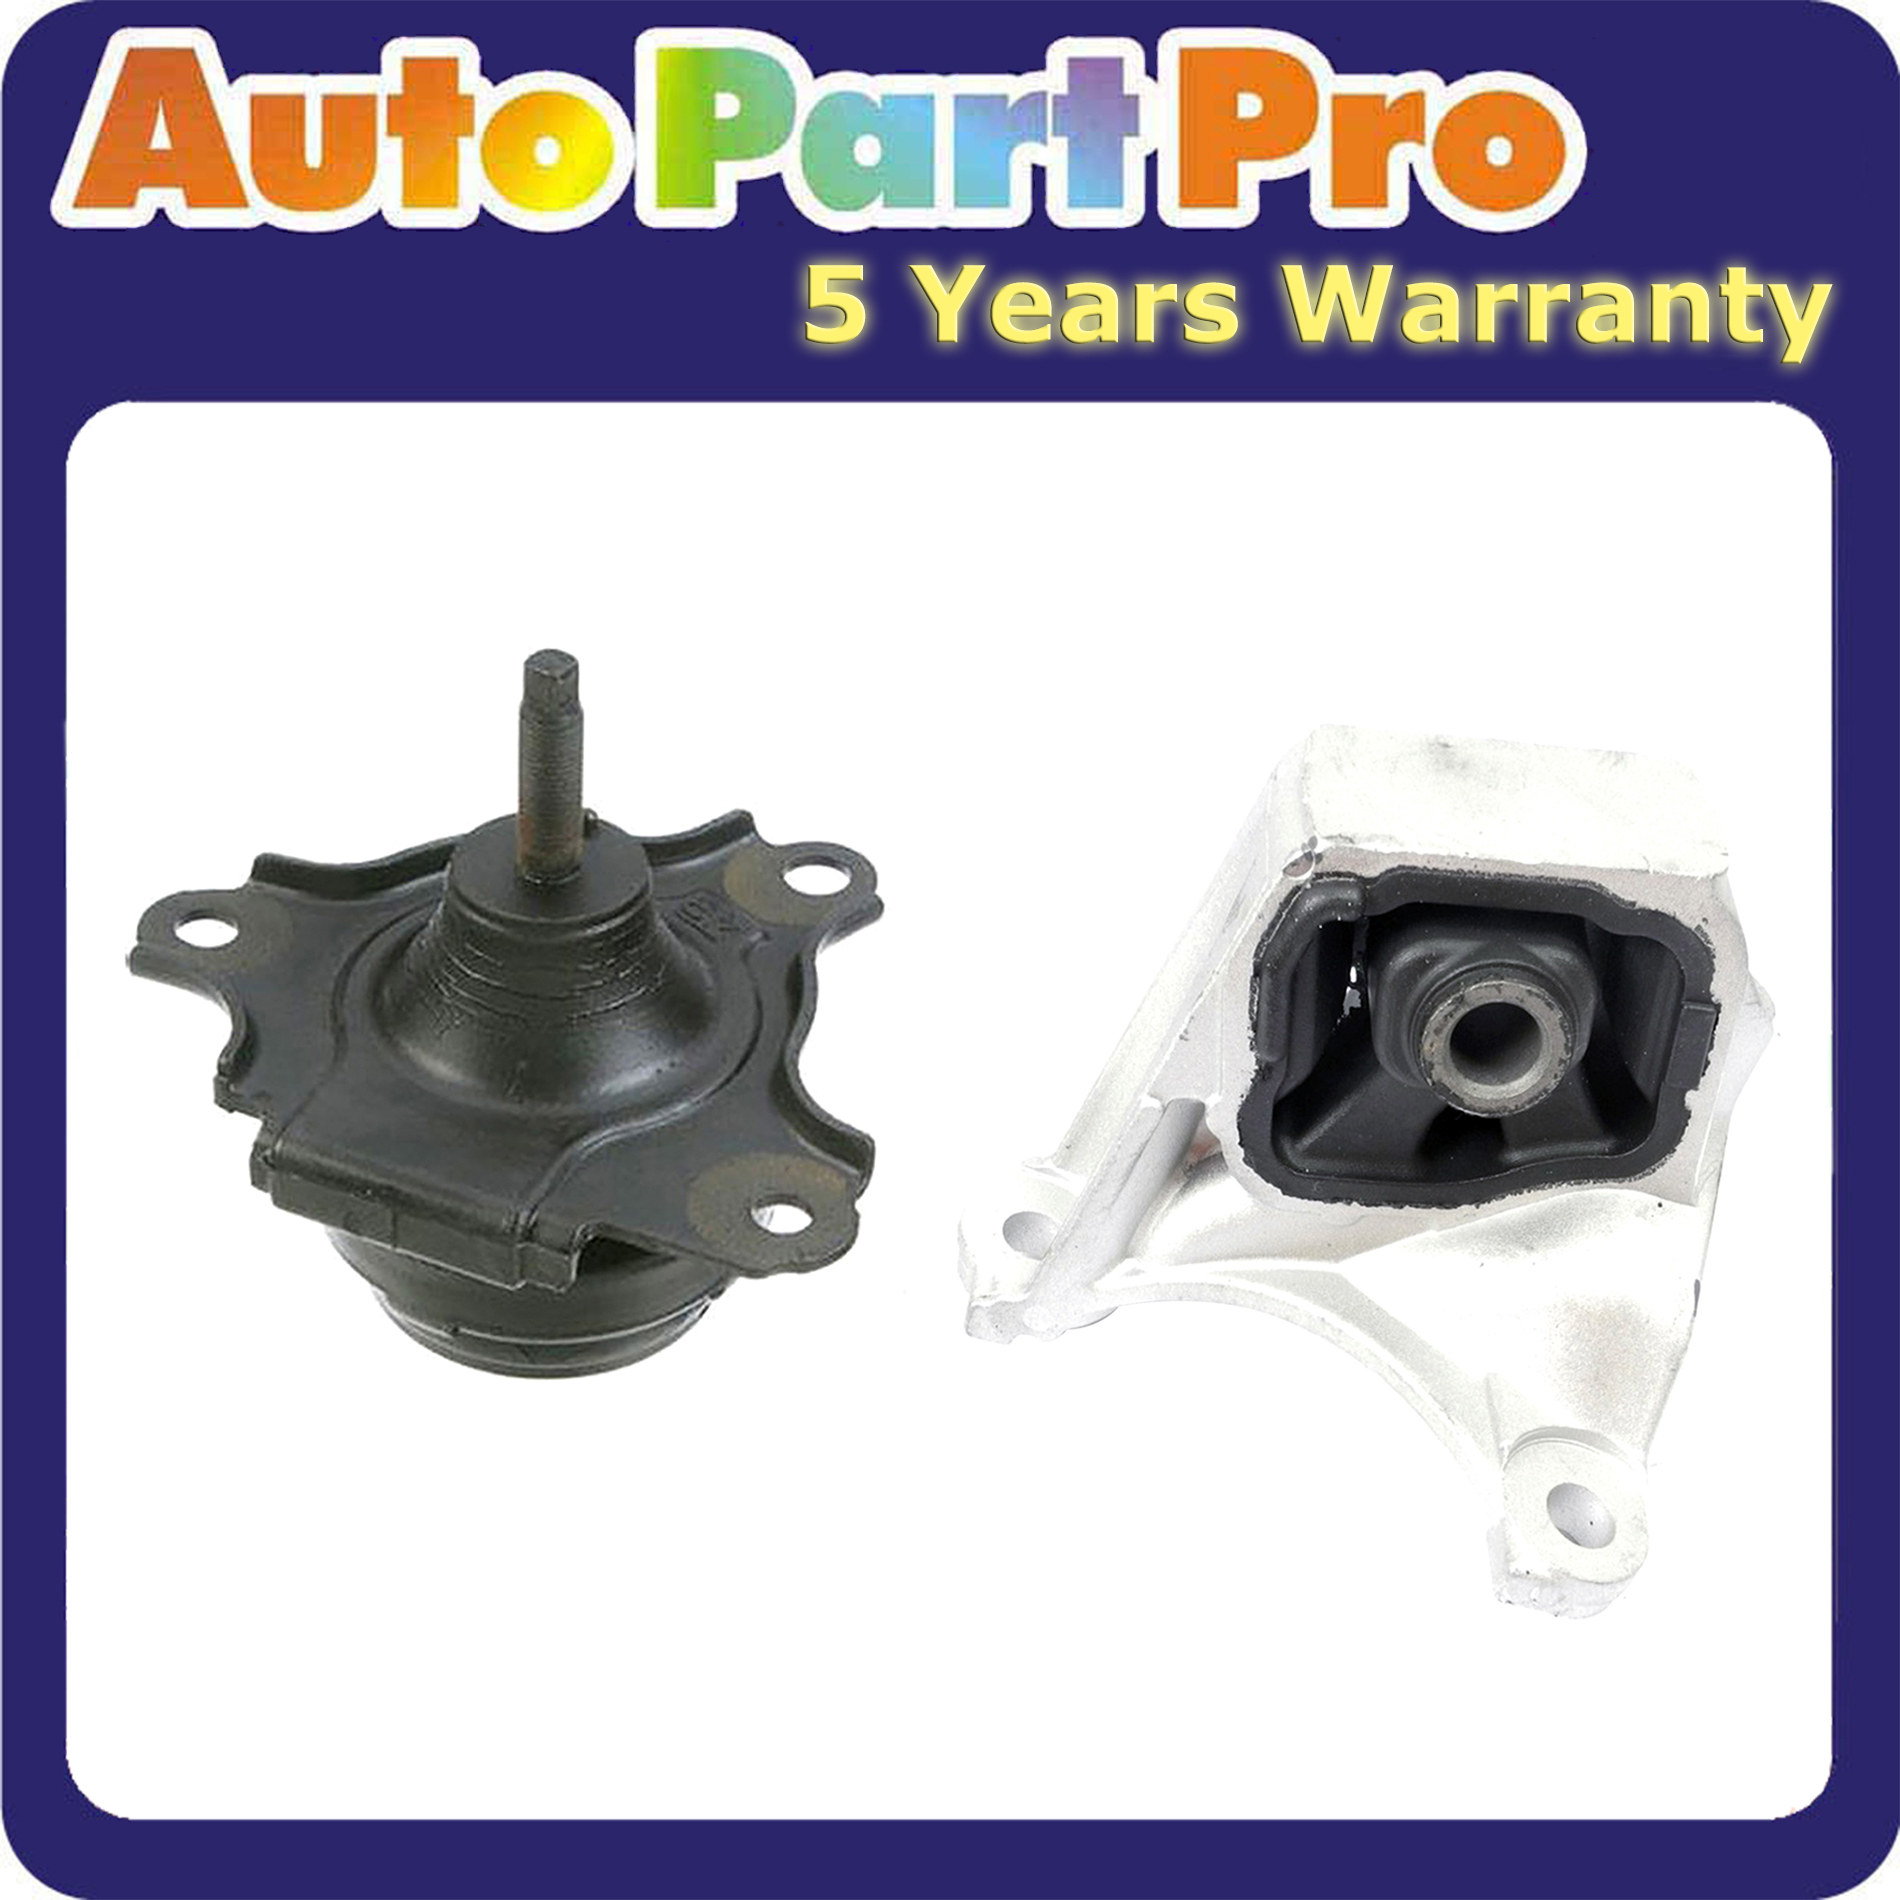 M582 Engine Motor Mount Front & Right For Acura RSX Honda